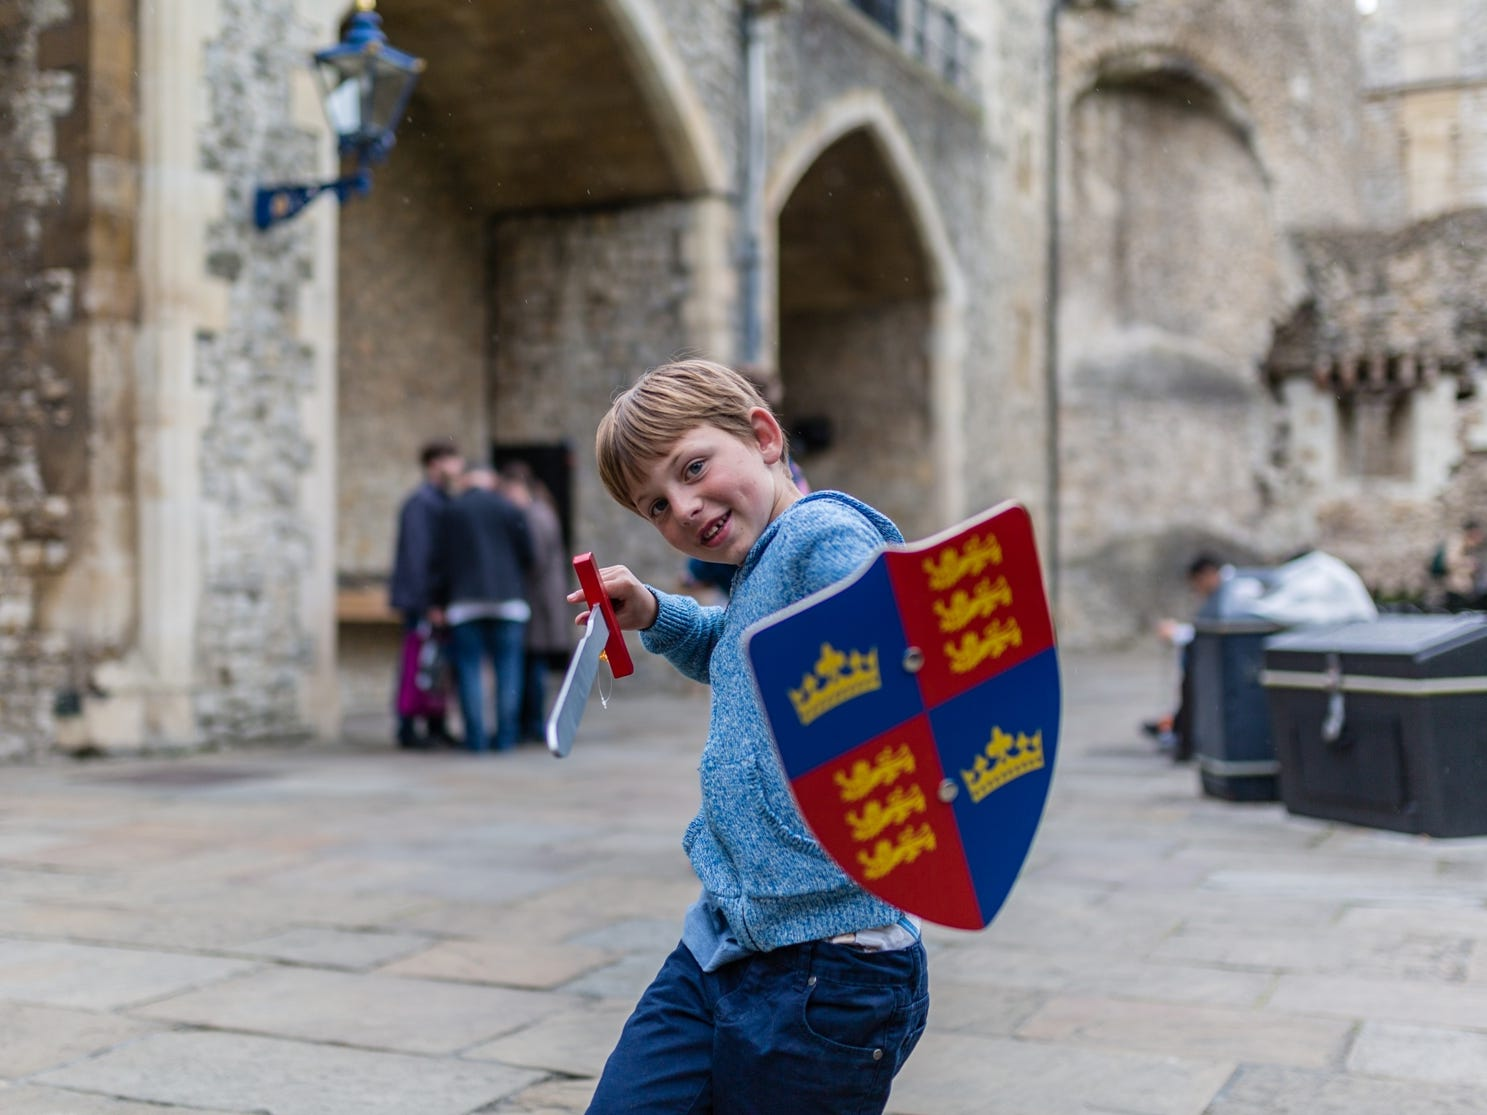 The United Kingdom is packed with child-friendly sites and makes an ideal place for kids to get their first passport stamp.